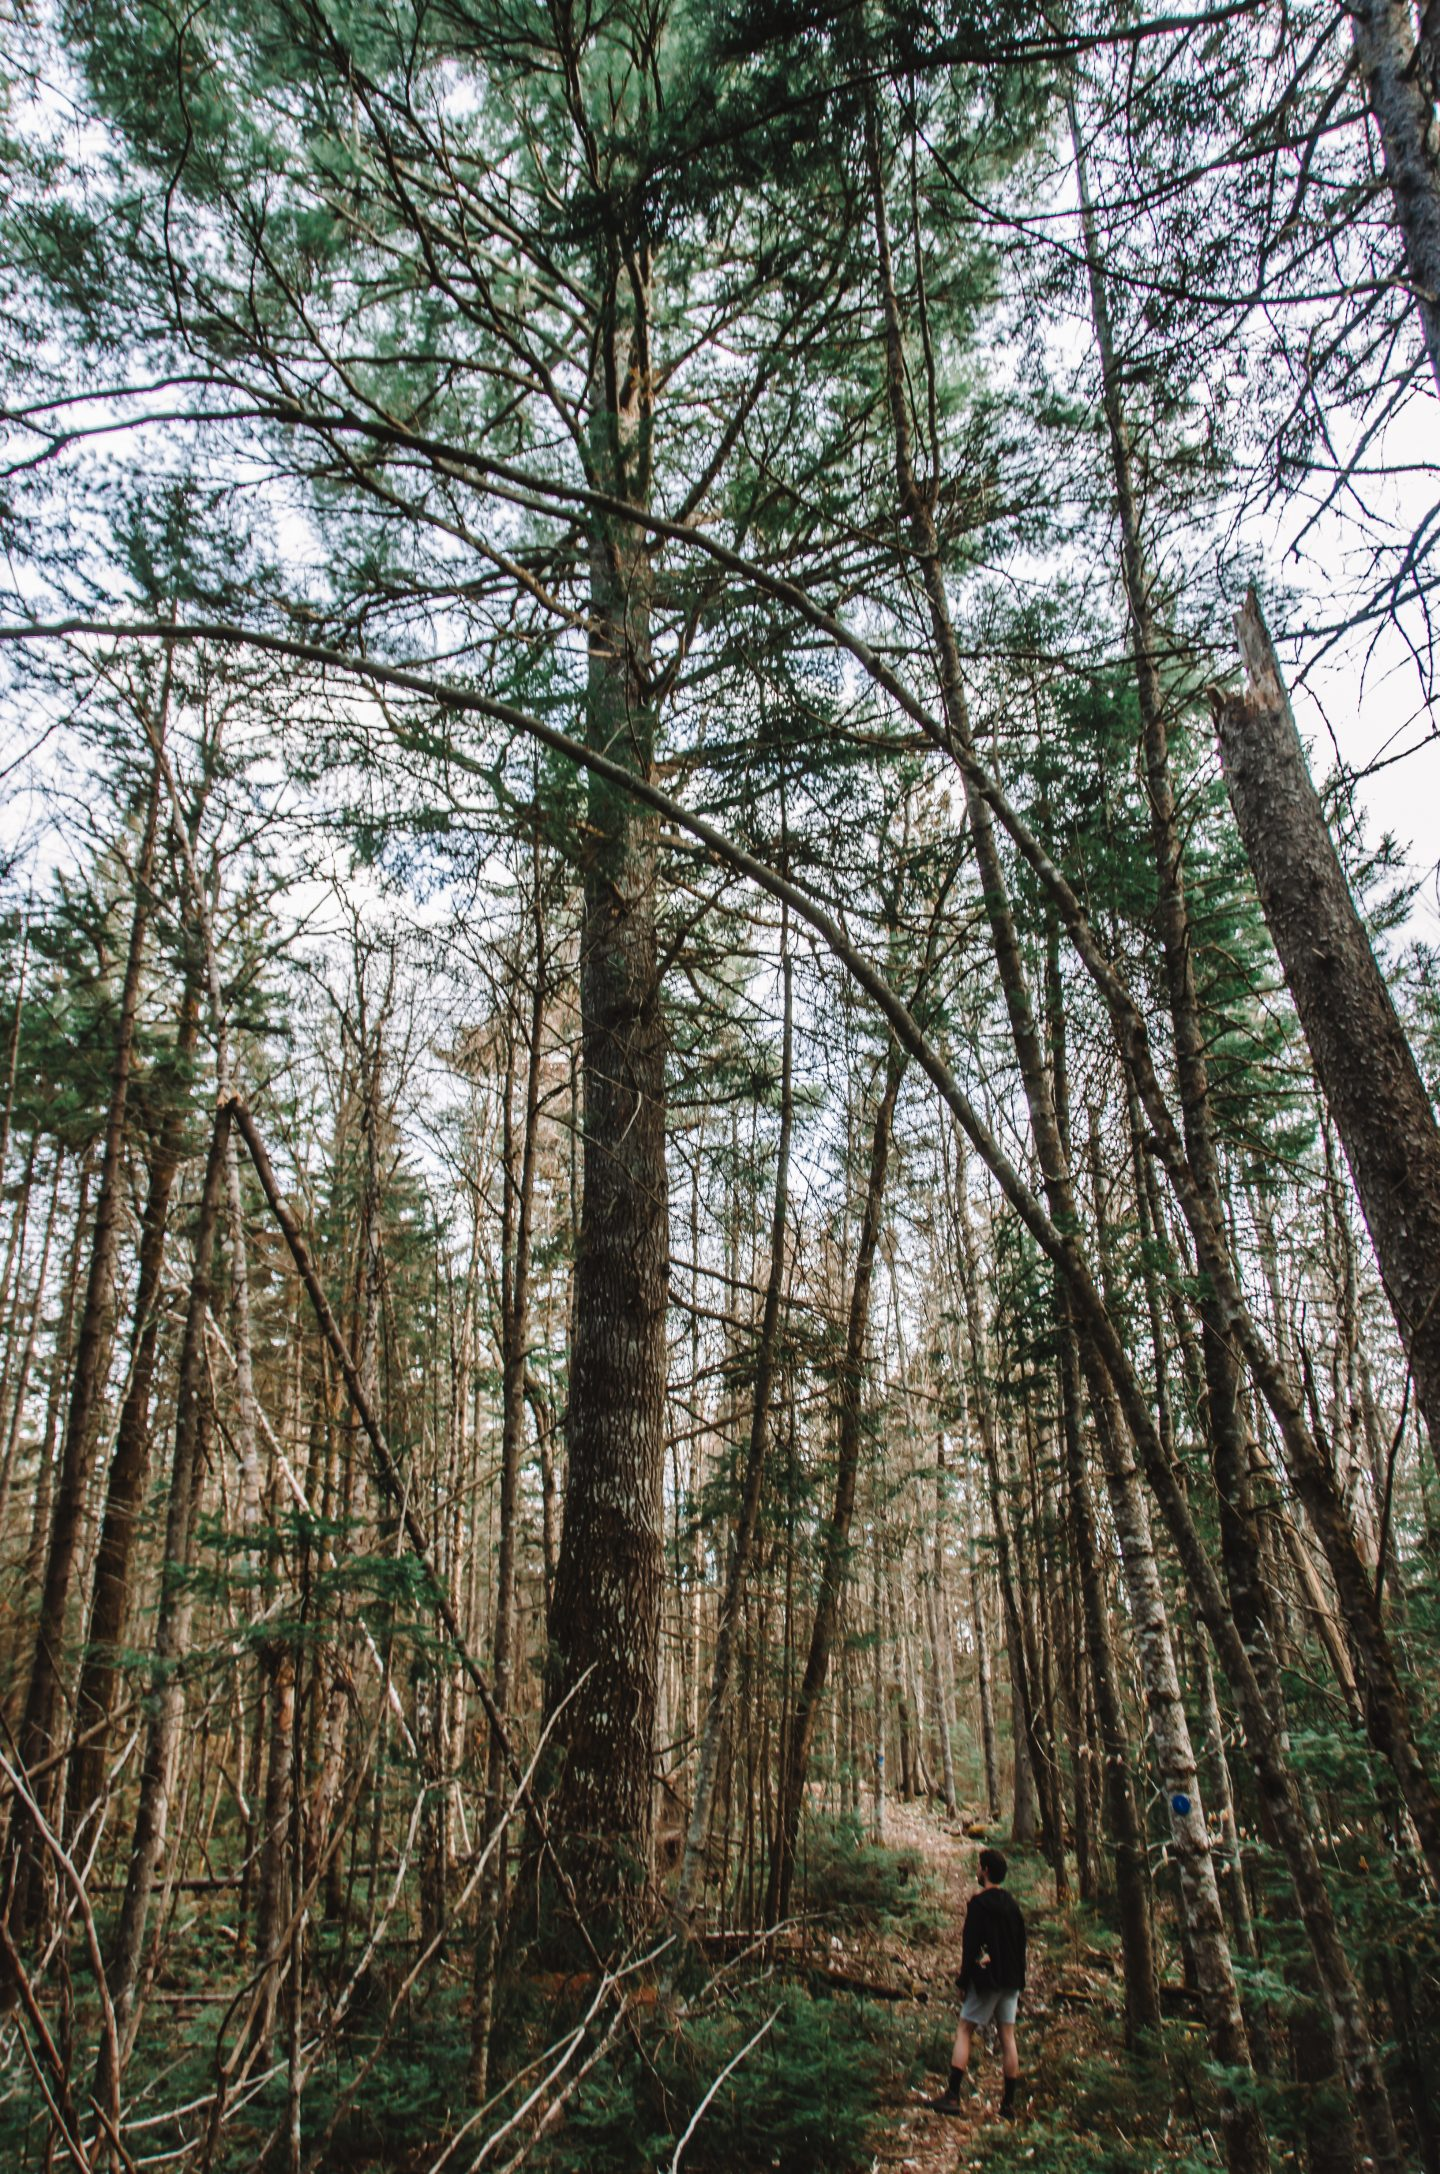 man stands in front of tall trees in Siamese Ponds Wilderness in the Adirondacks in Upstate NY